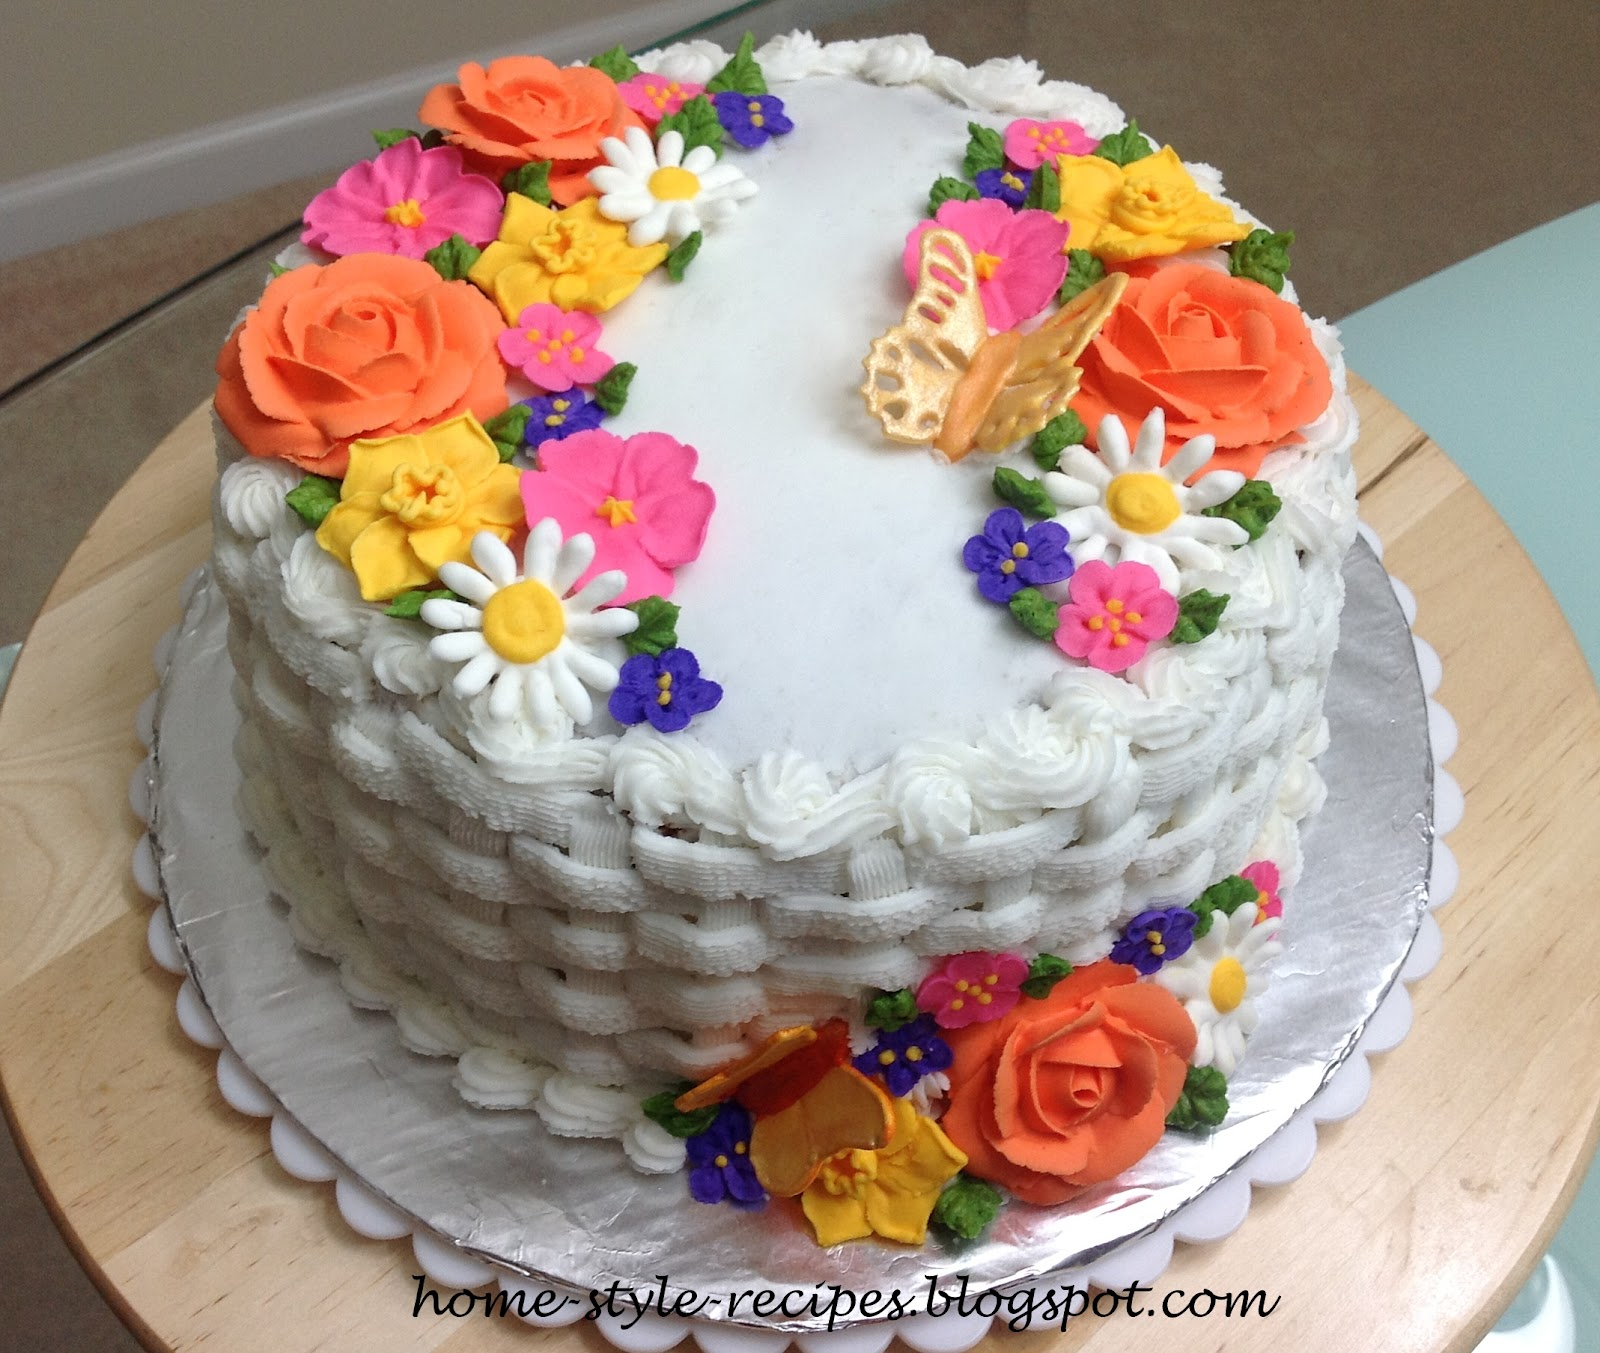 Cake Decoration Flowers Recipe : Share-A-Recipe: Wilton Flowers and Cake design ( Course 2 ...